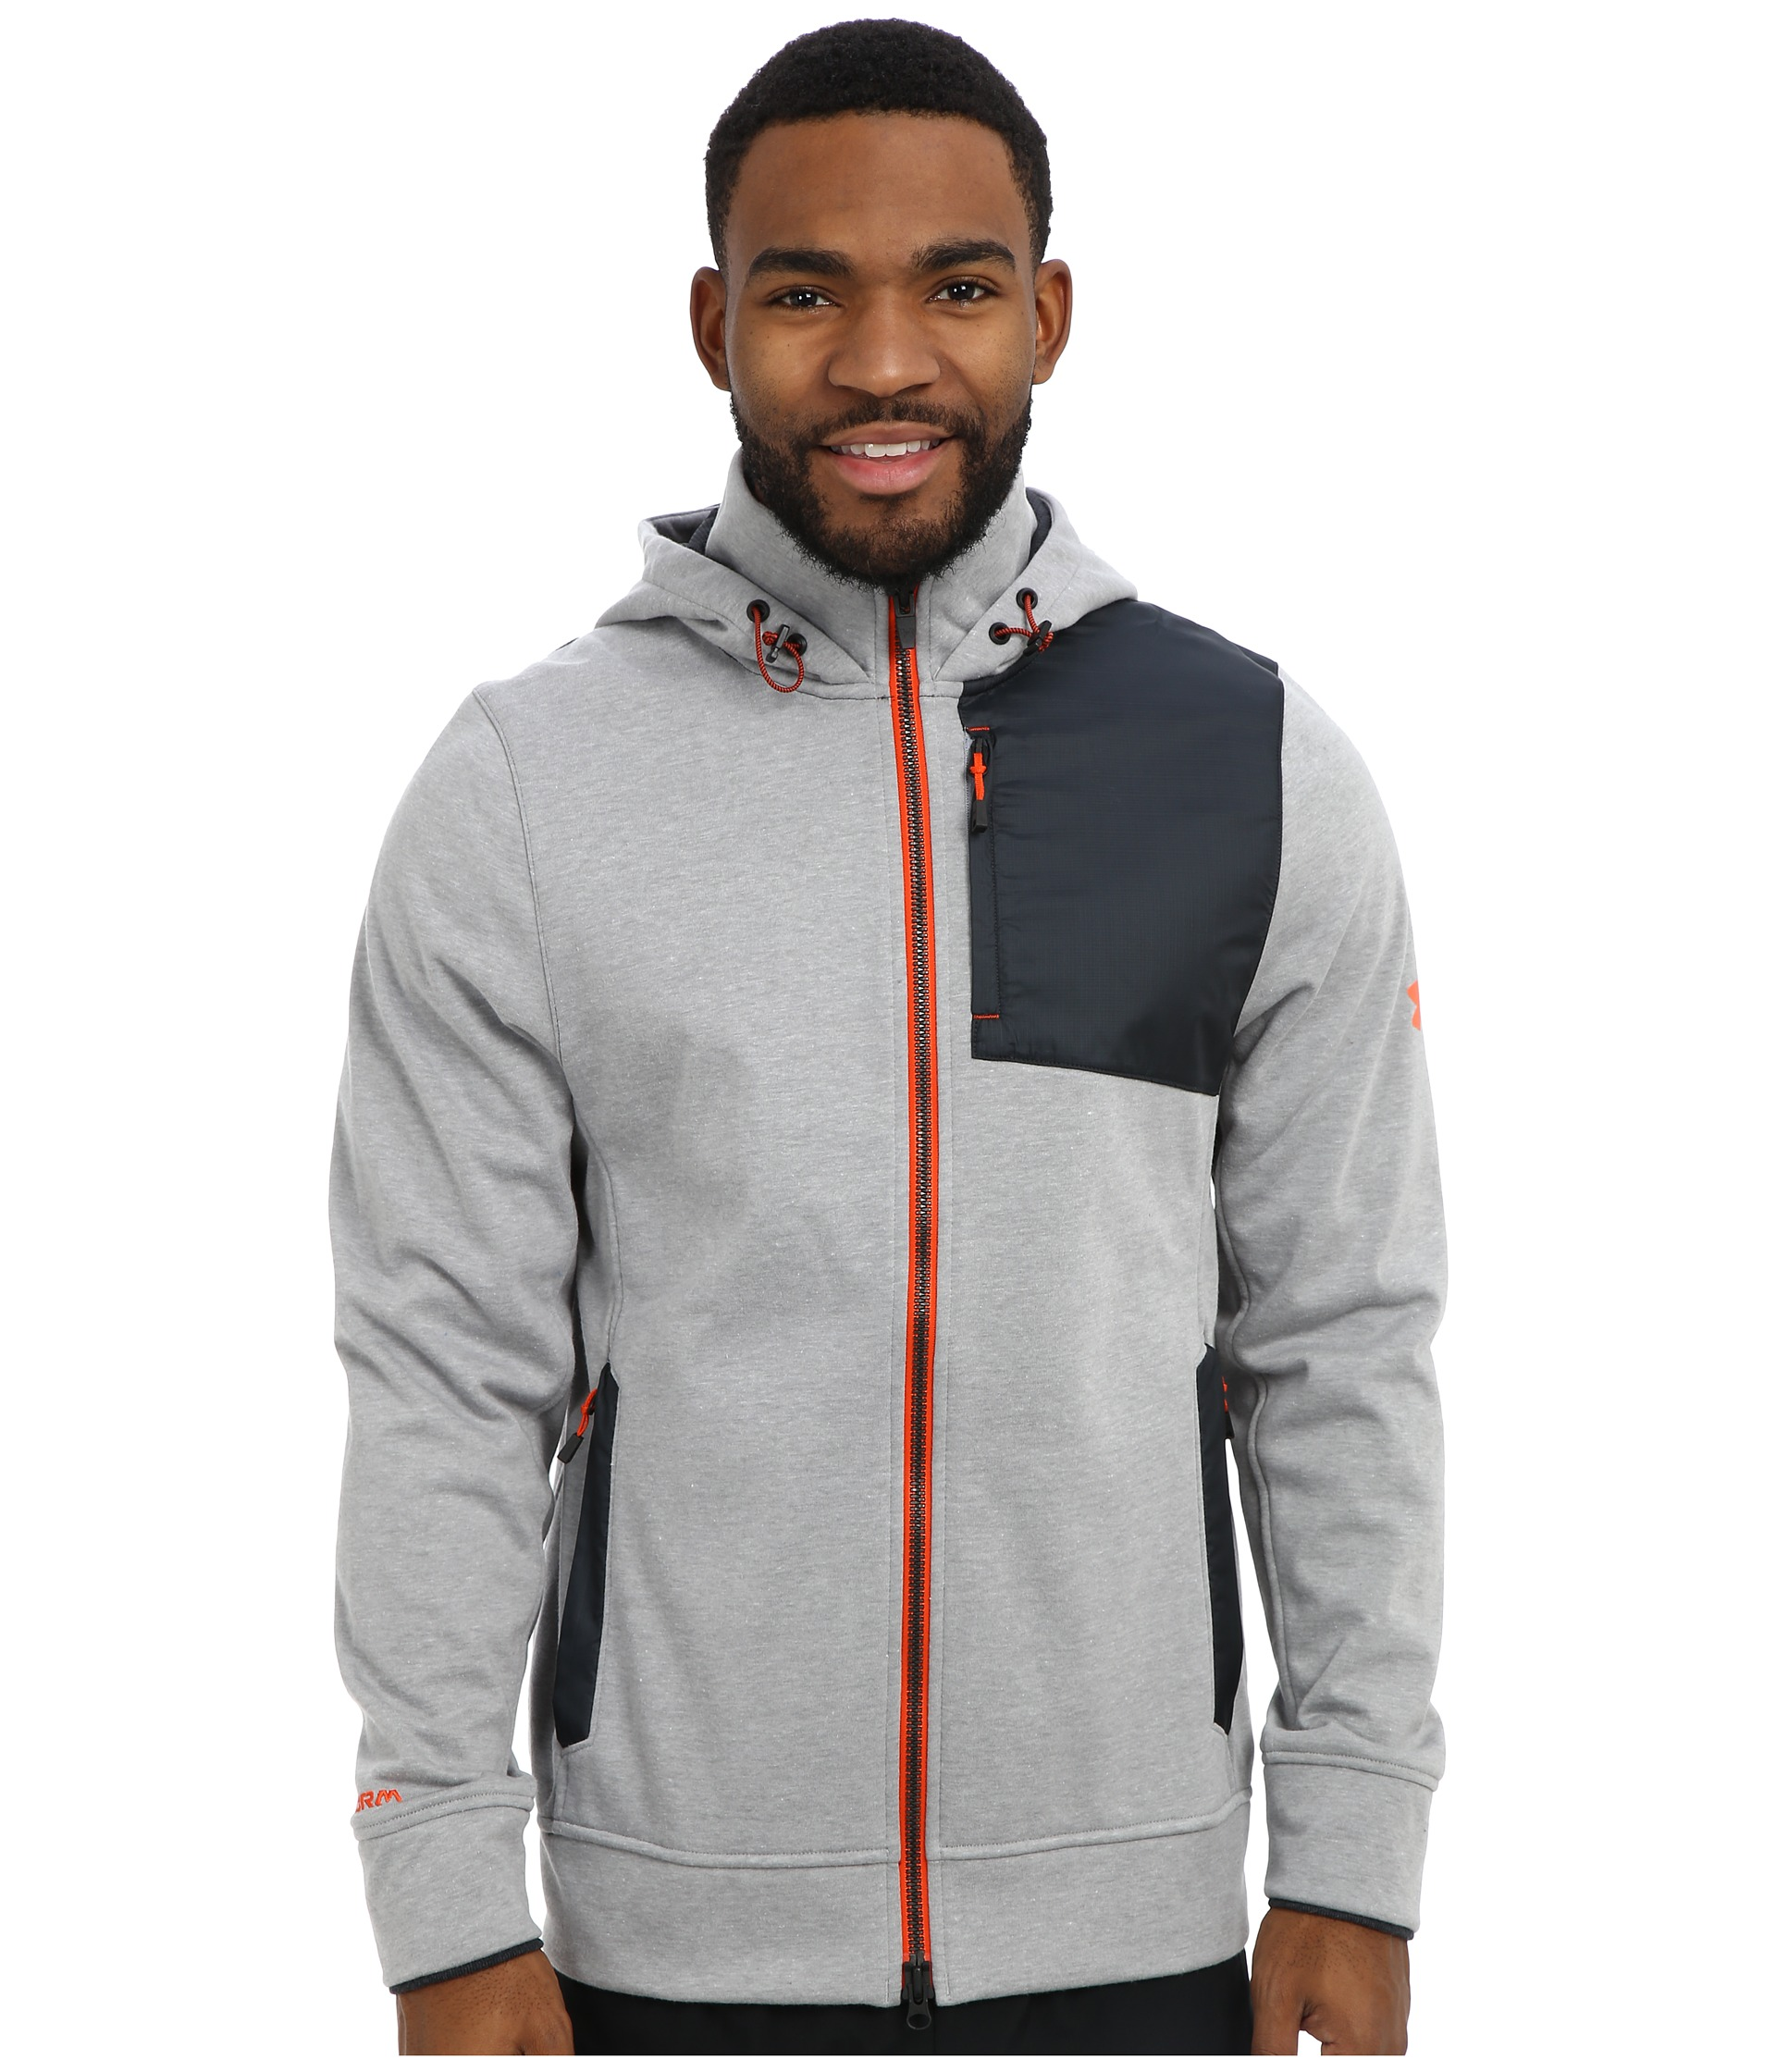 Under Armour UA Element Breaker Hoodie $74.99 (40% off MSRP $124.99